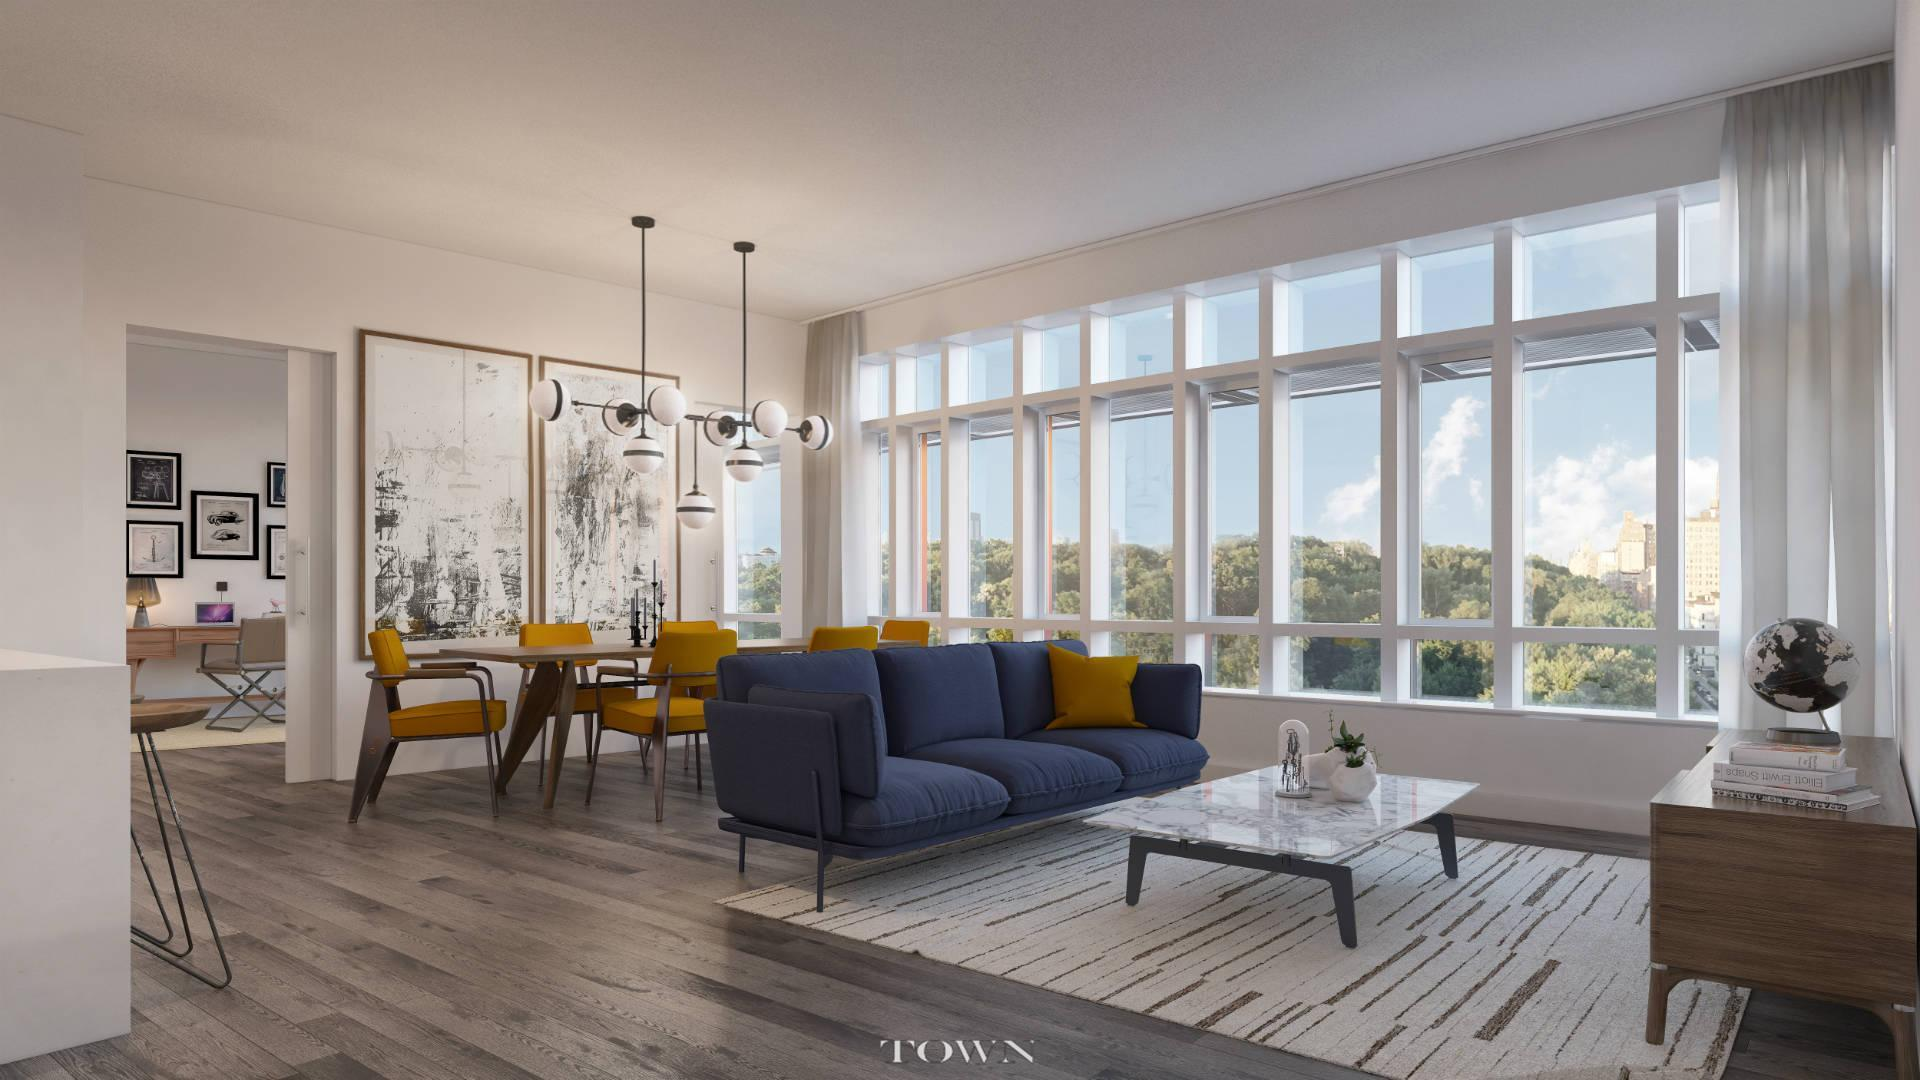 Condominium for Sale at 285 West 110th Street, #6-F 285 West 110th Street New York, New York 10026 United States